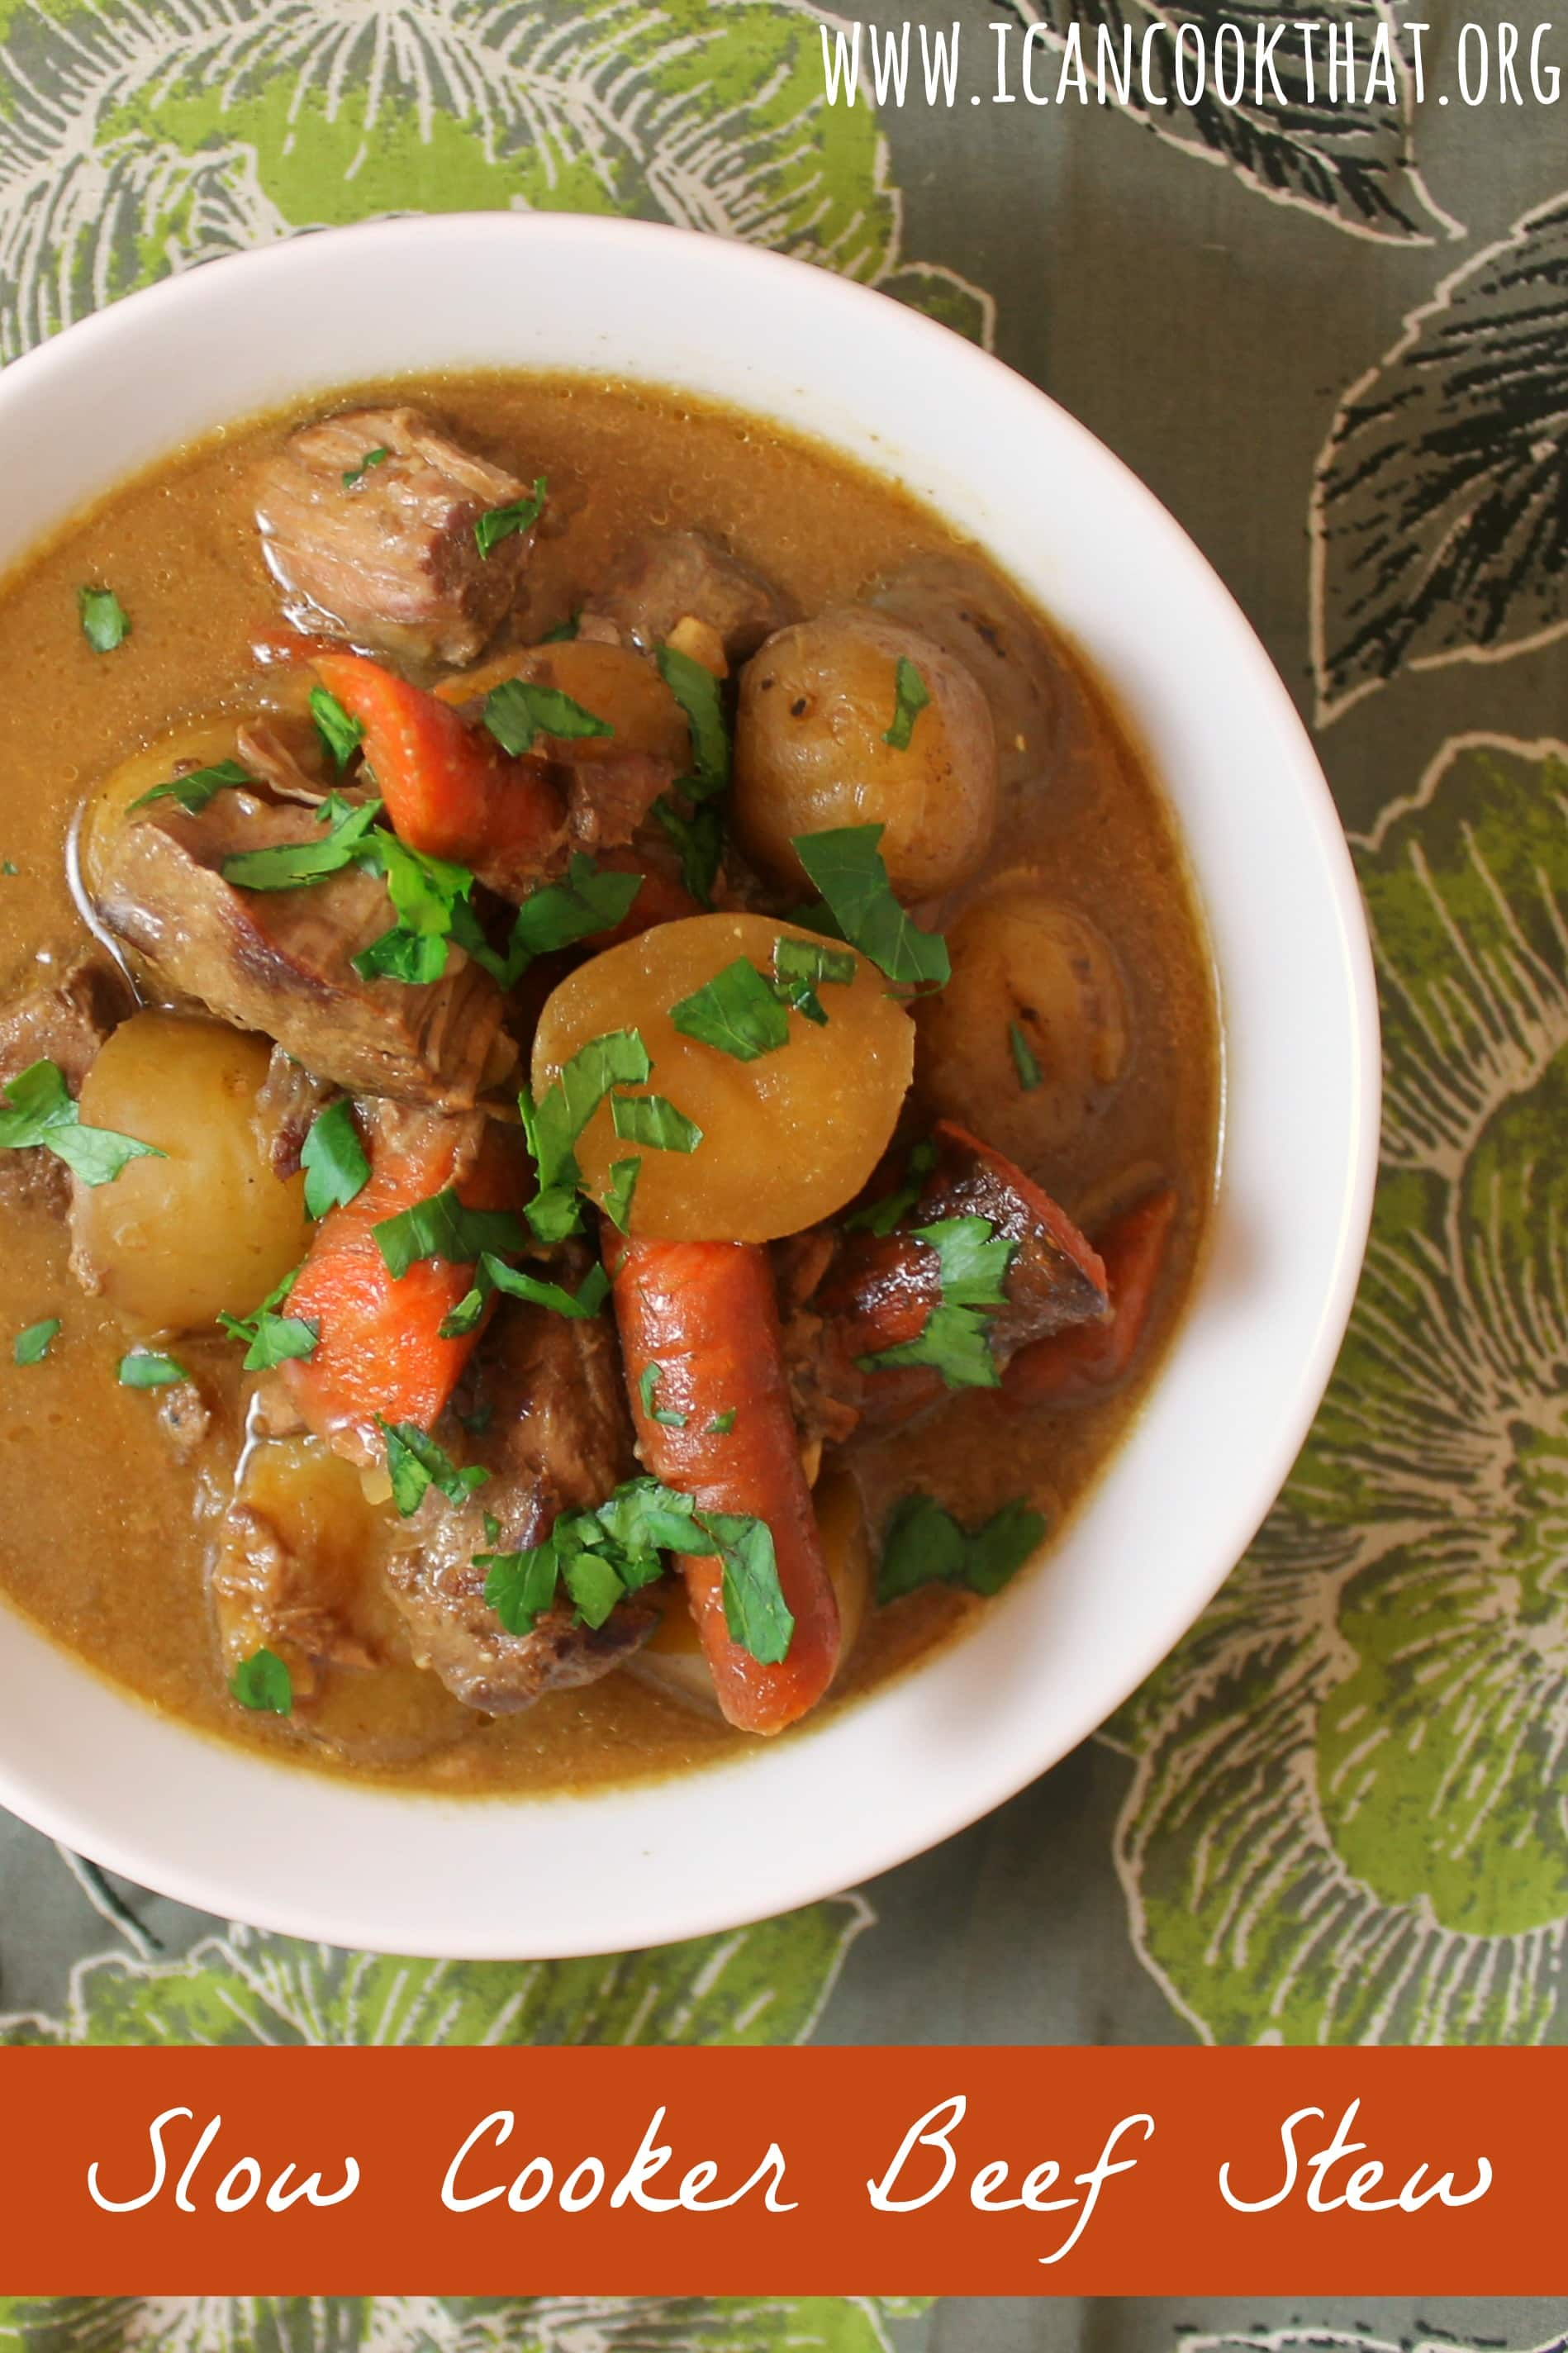 Slow Cooker Beef Stew Recipe | I Can Cook That